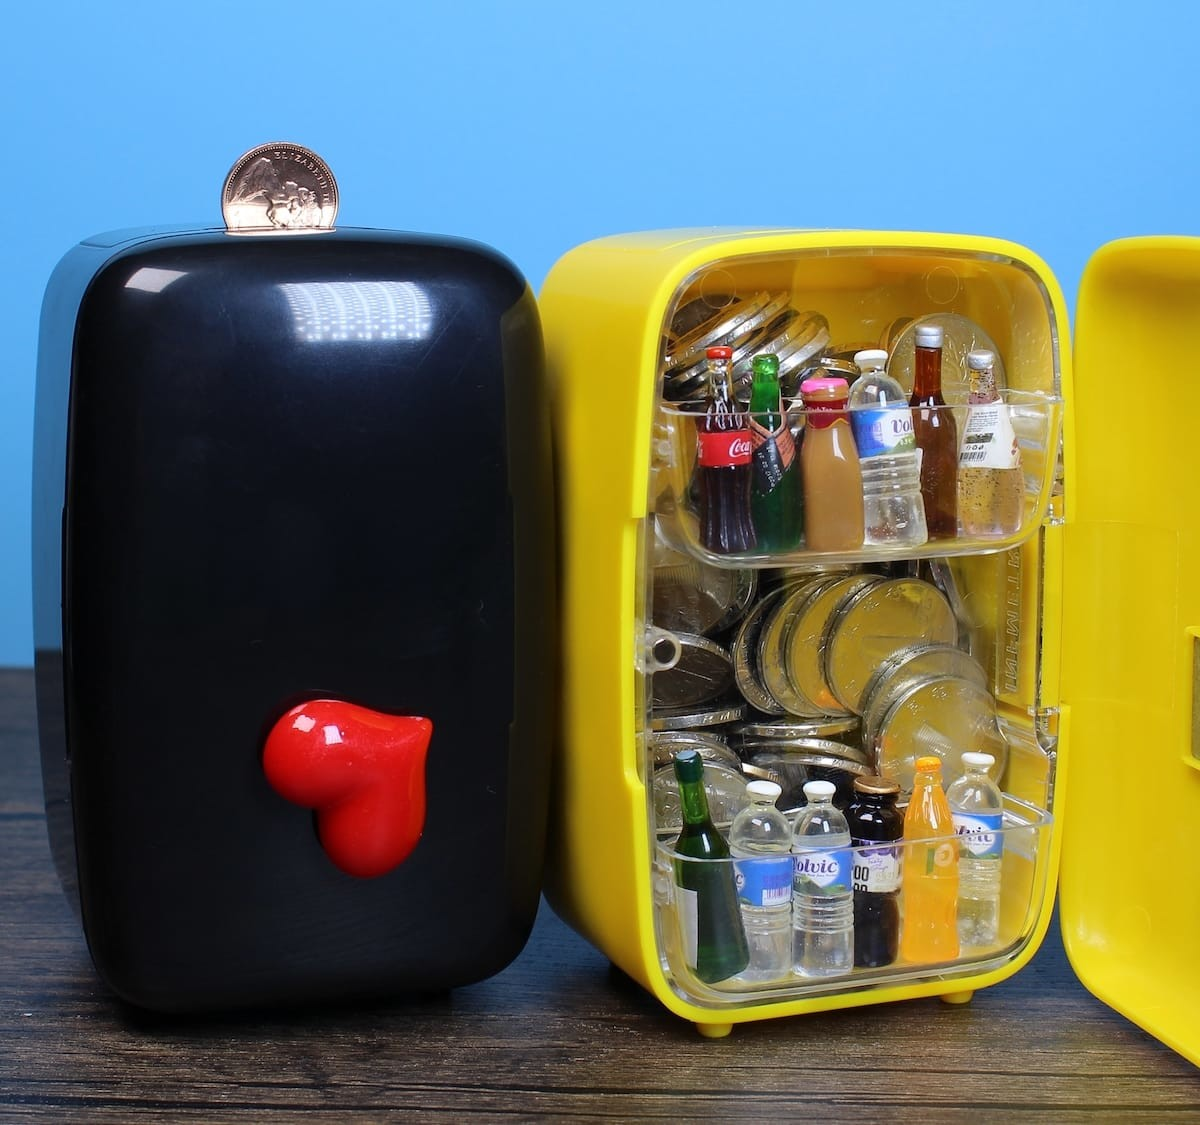 Mini Refrigerator piggy bank holds your pens and other little desk items